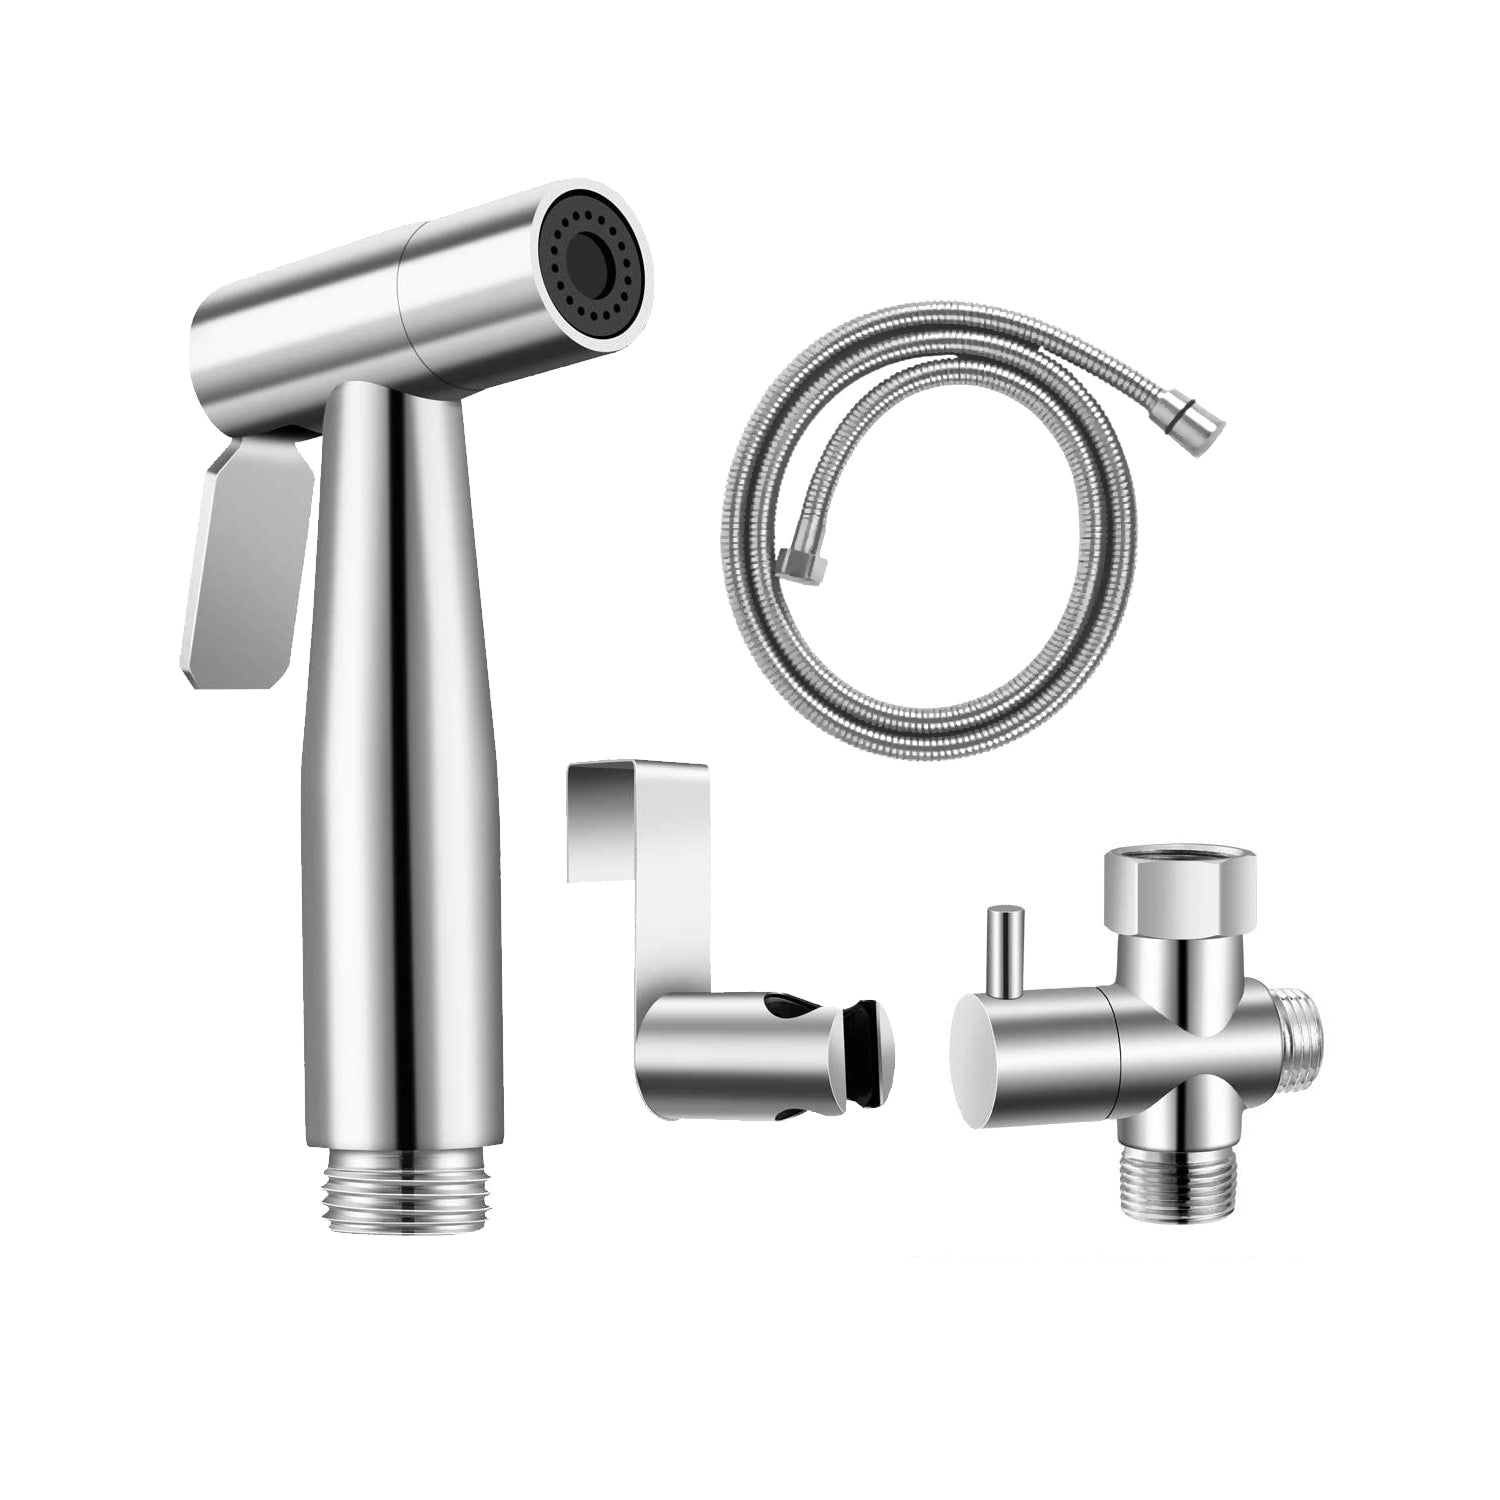 Spahaus – Stainless Steel Handheld Bidet Sprayer Set